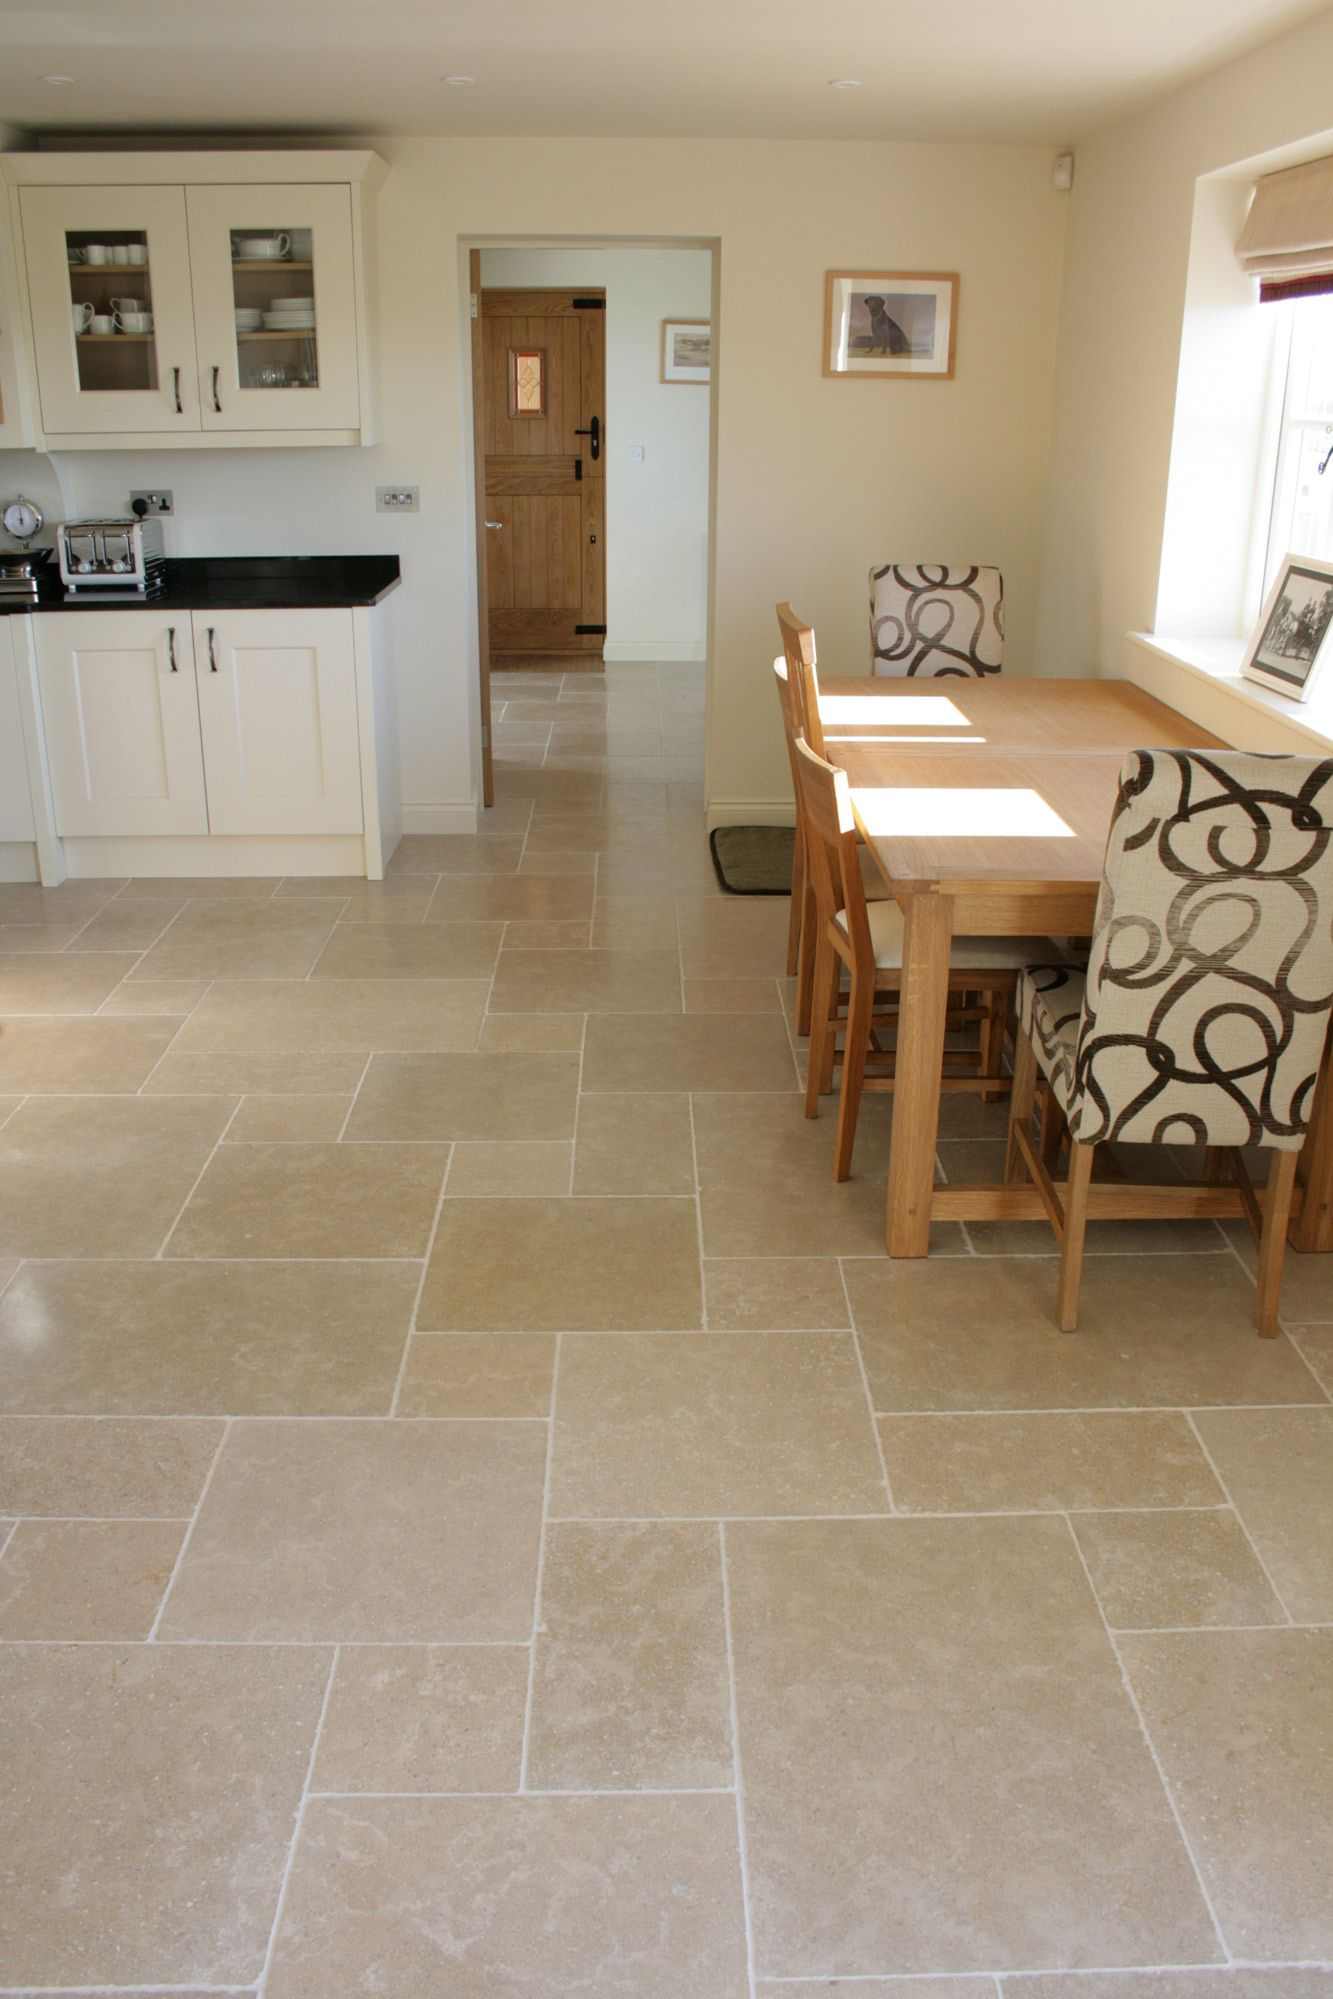 Stone Floors In Kitchen Grey Kitchen Floor Tiles Paris Grey Limestone Http Www